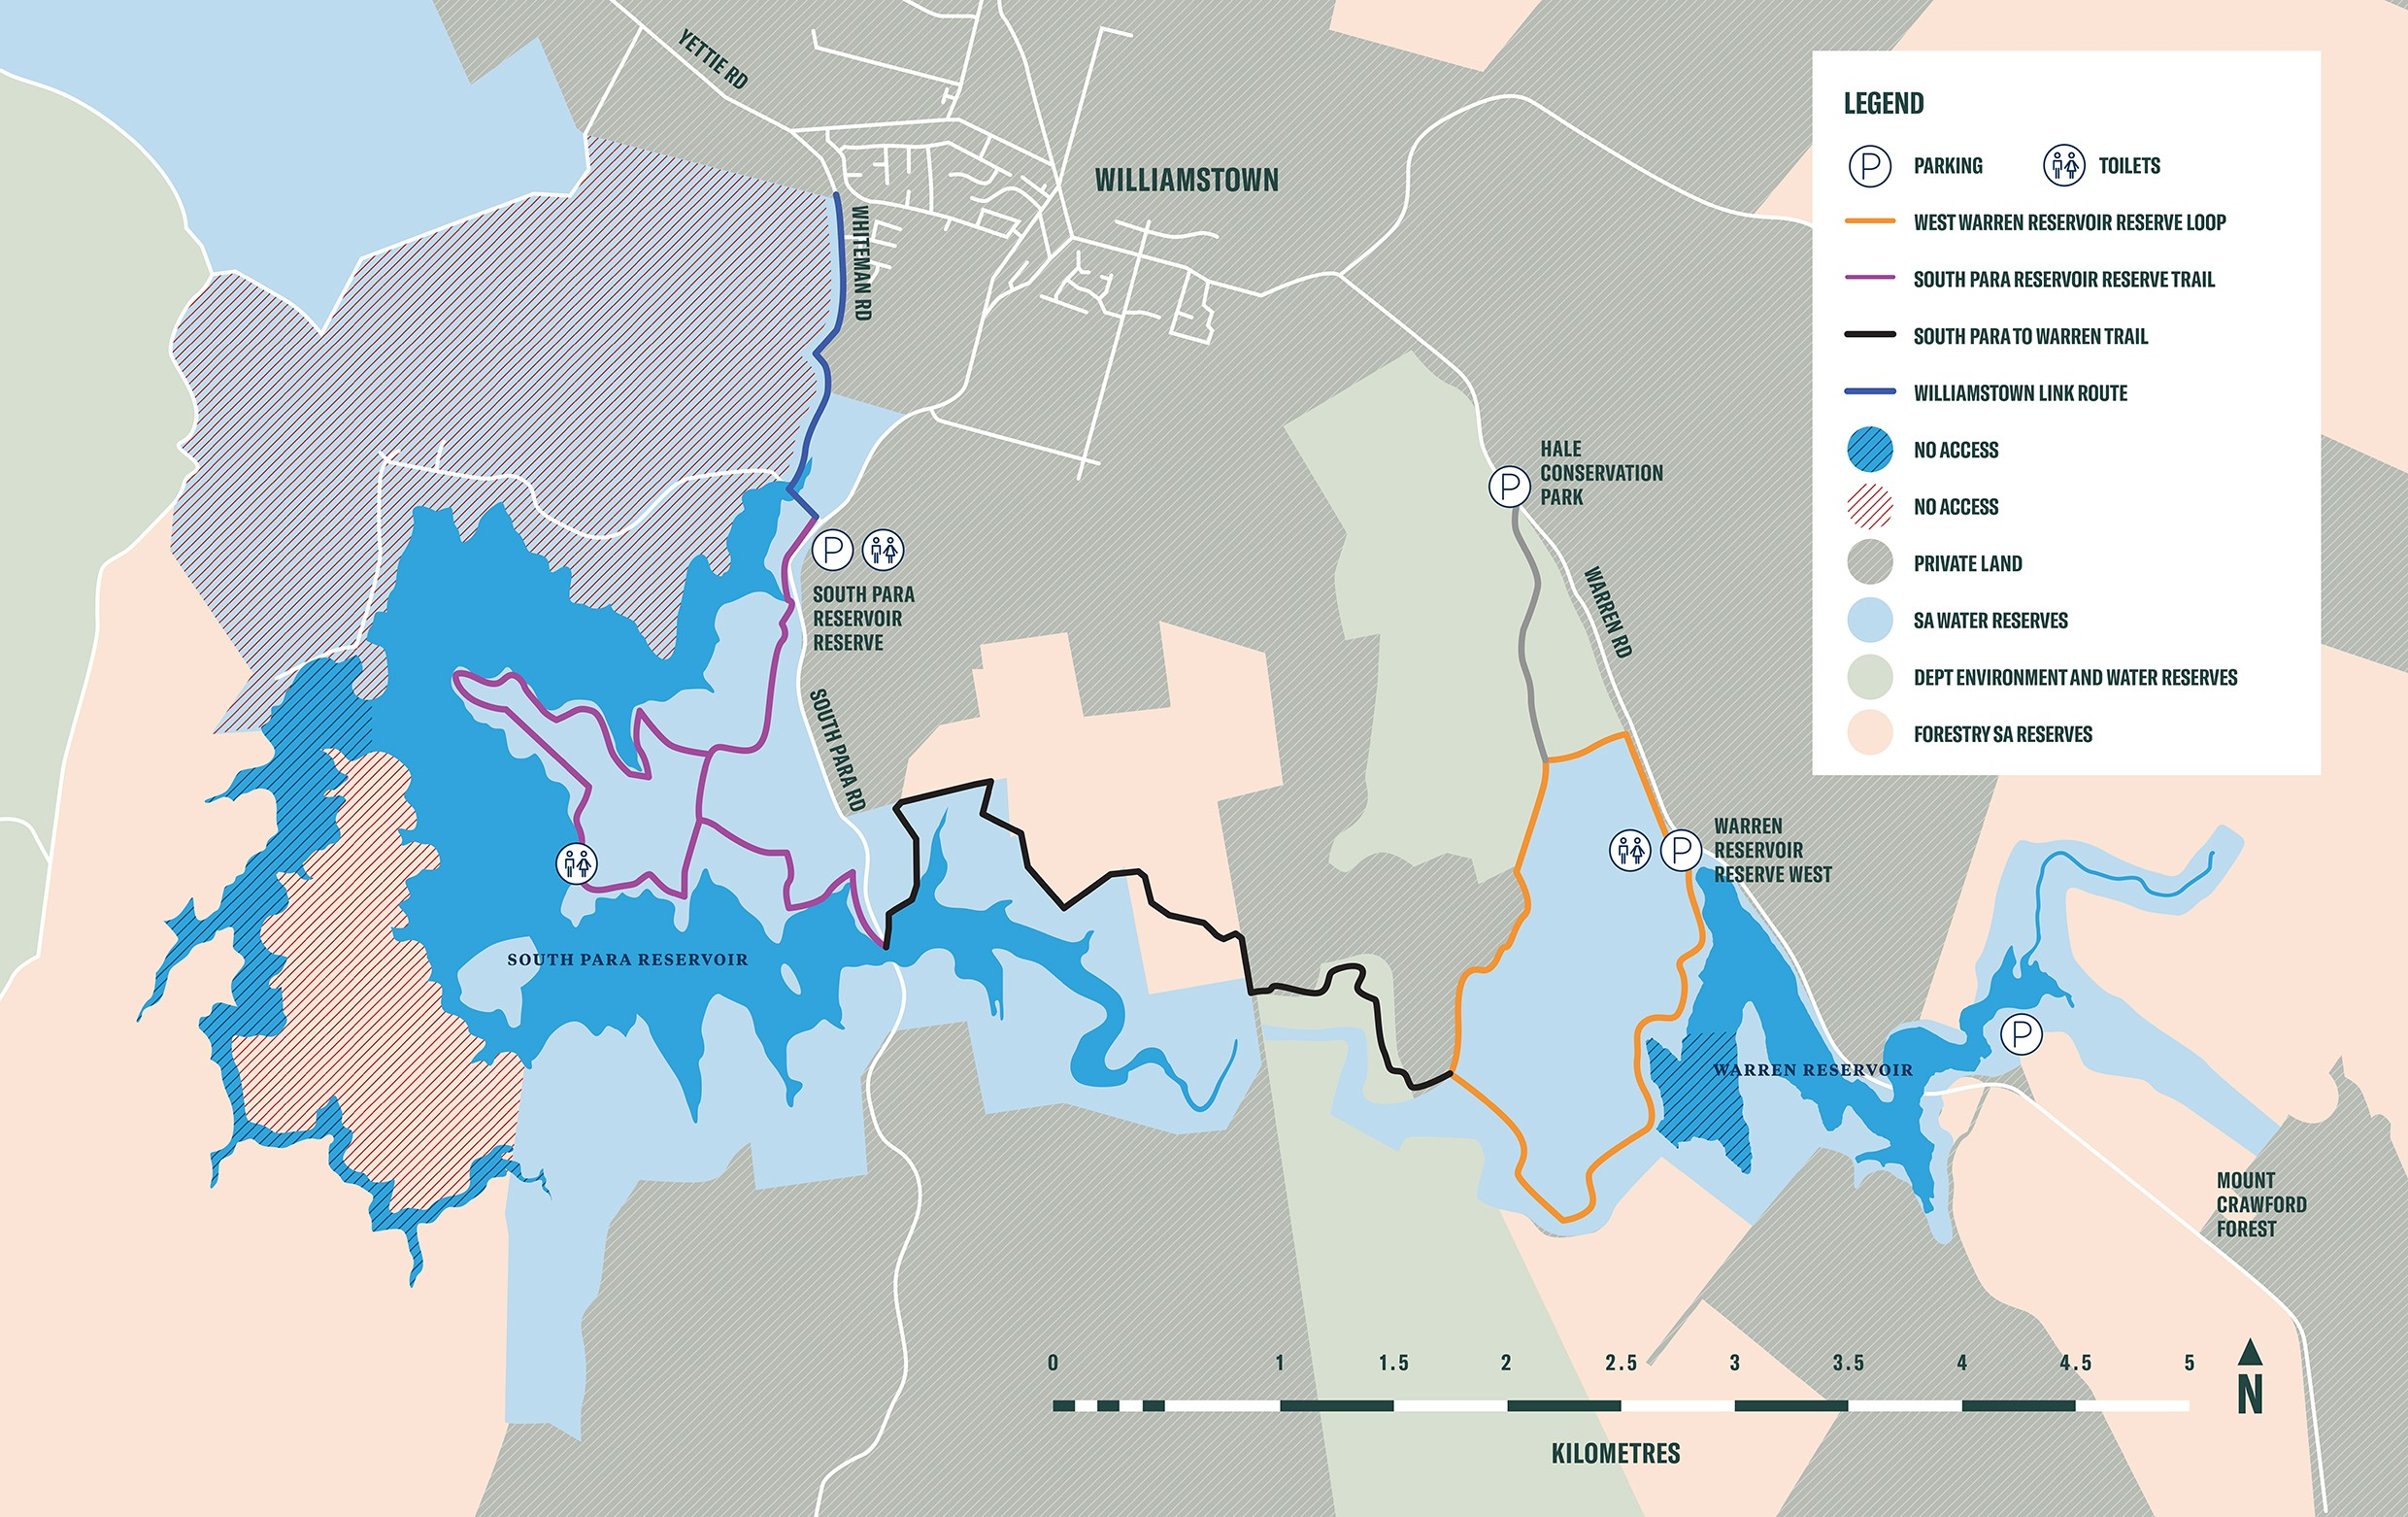 Northern trails network